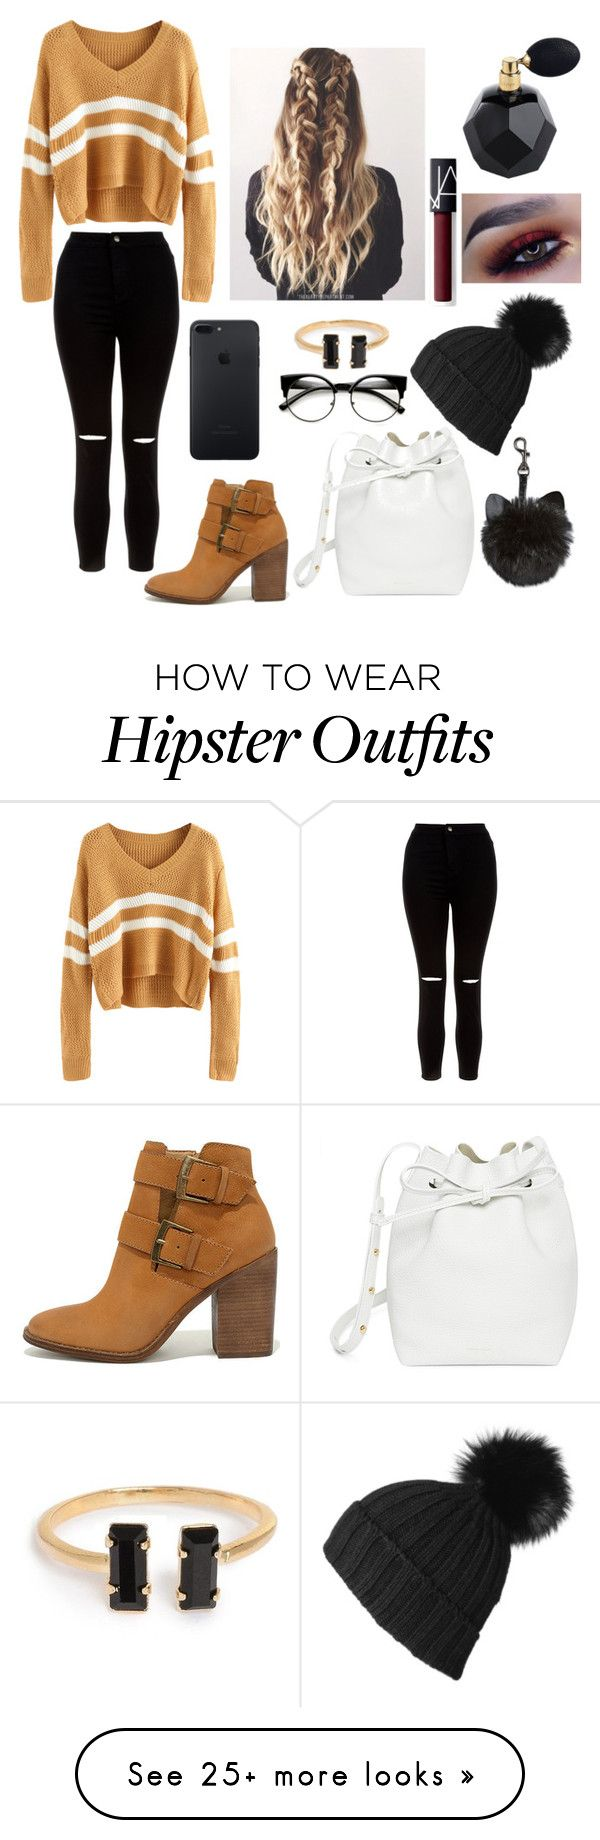 """""""Driving"""" by anjolea on Polyvore featuring New Look, Steve Madden, Mansur Gavriel, Black and NARS Cosmetics"""